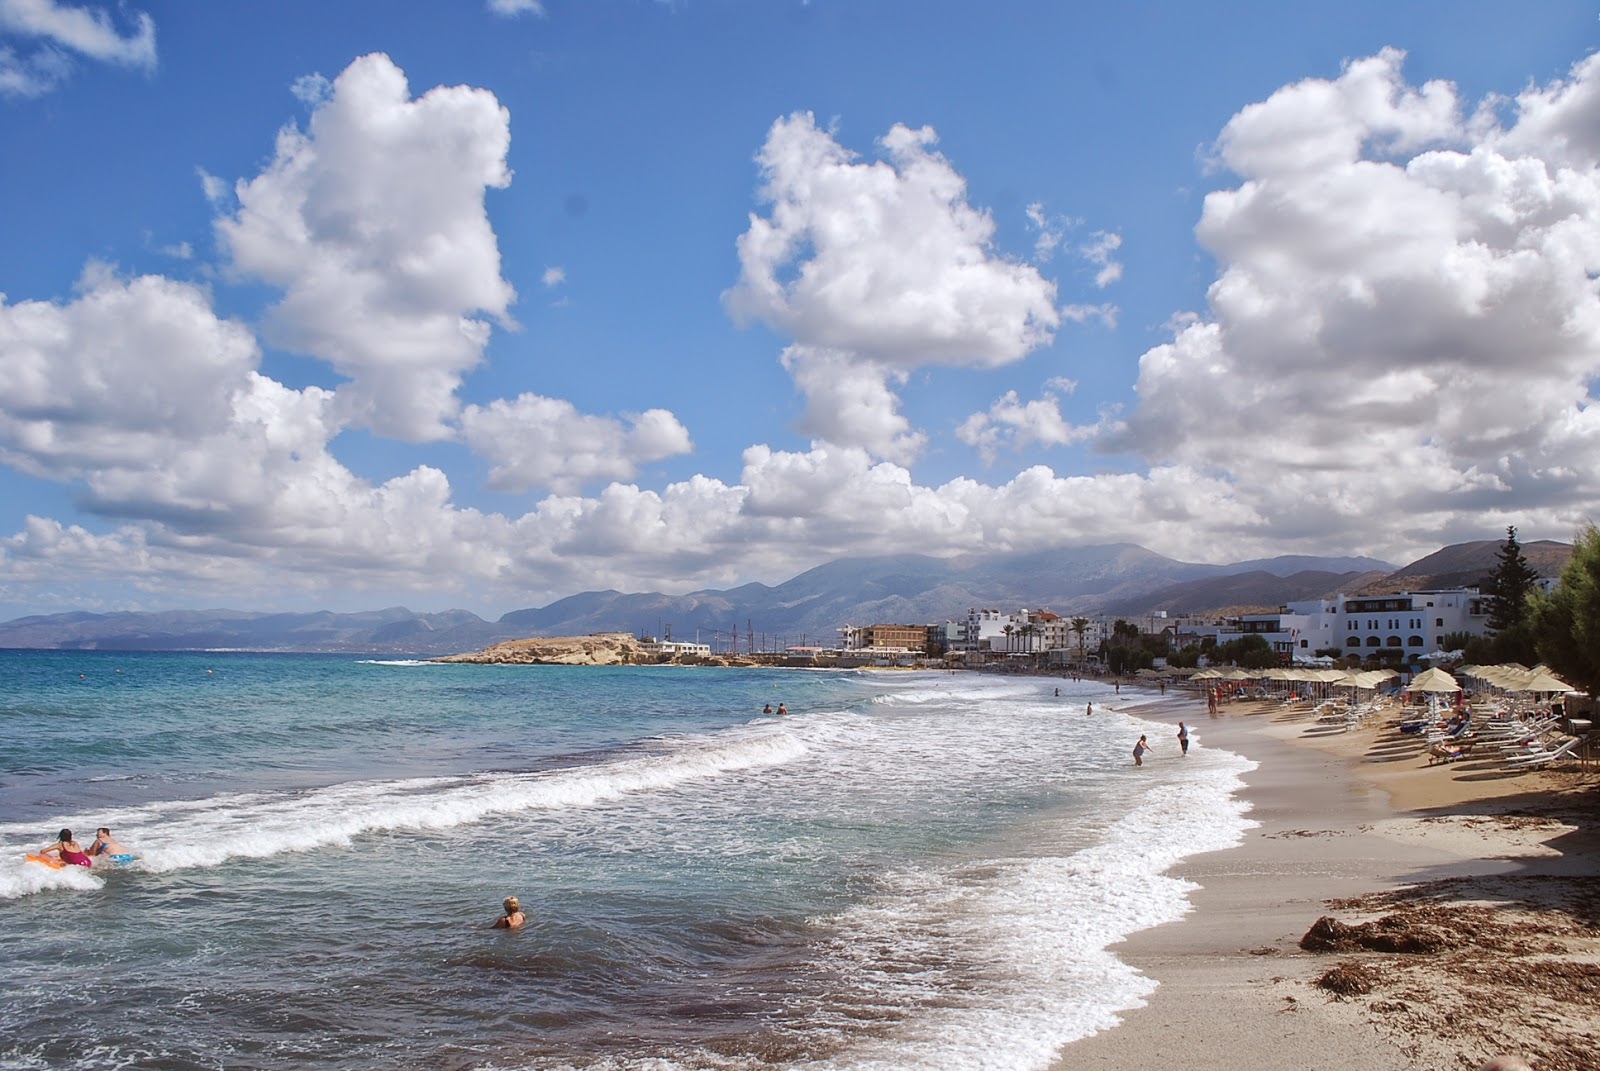 Пляж у отеля Creta maris, Крит Греция/ Beach of Creta Maris hotel, Creta, Greece.